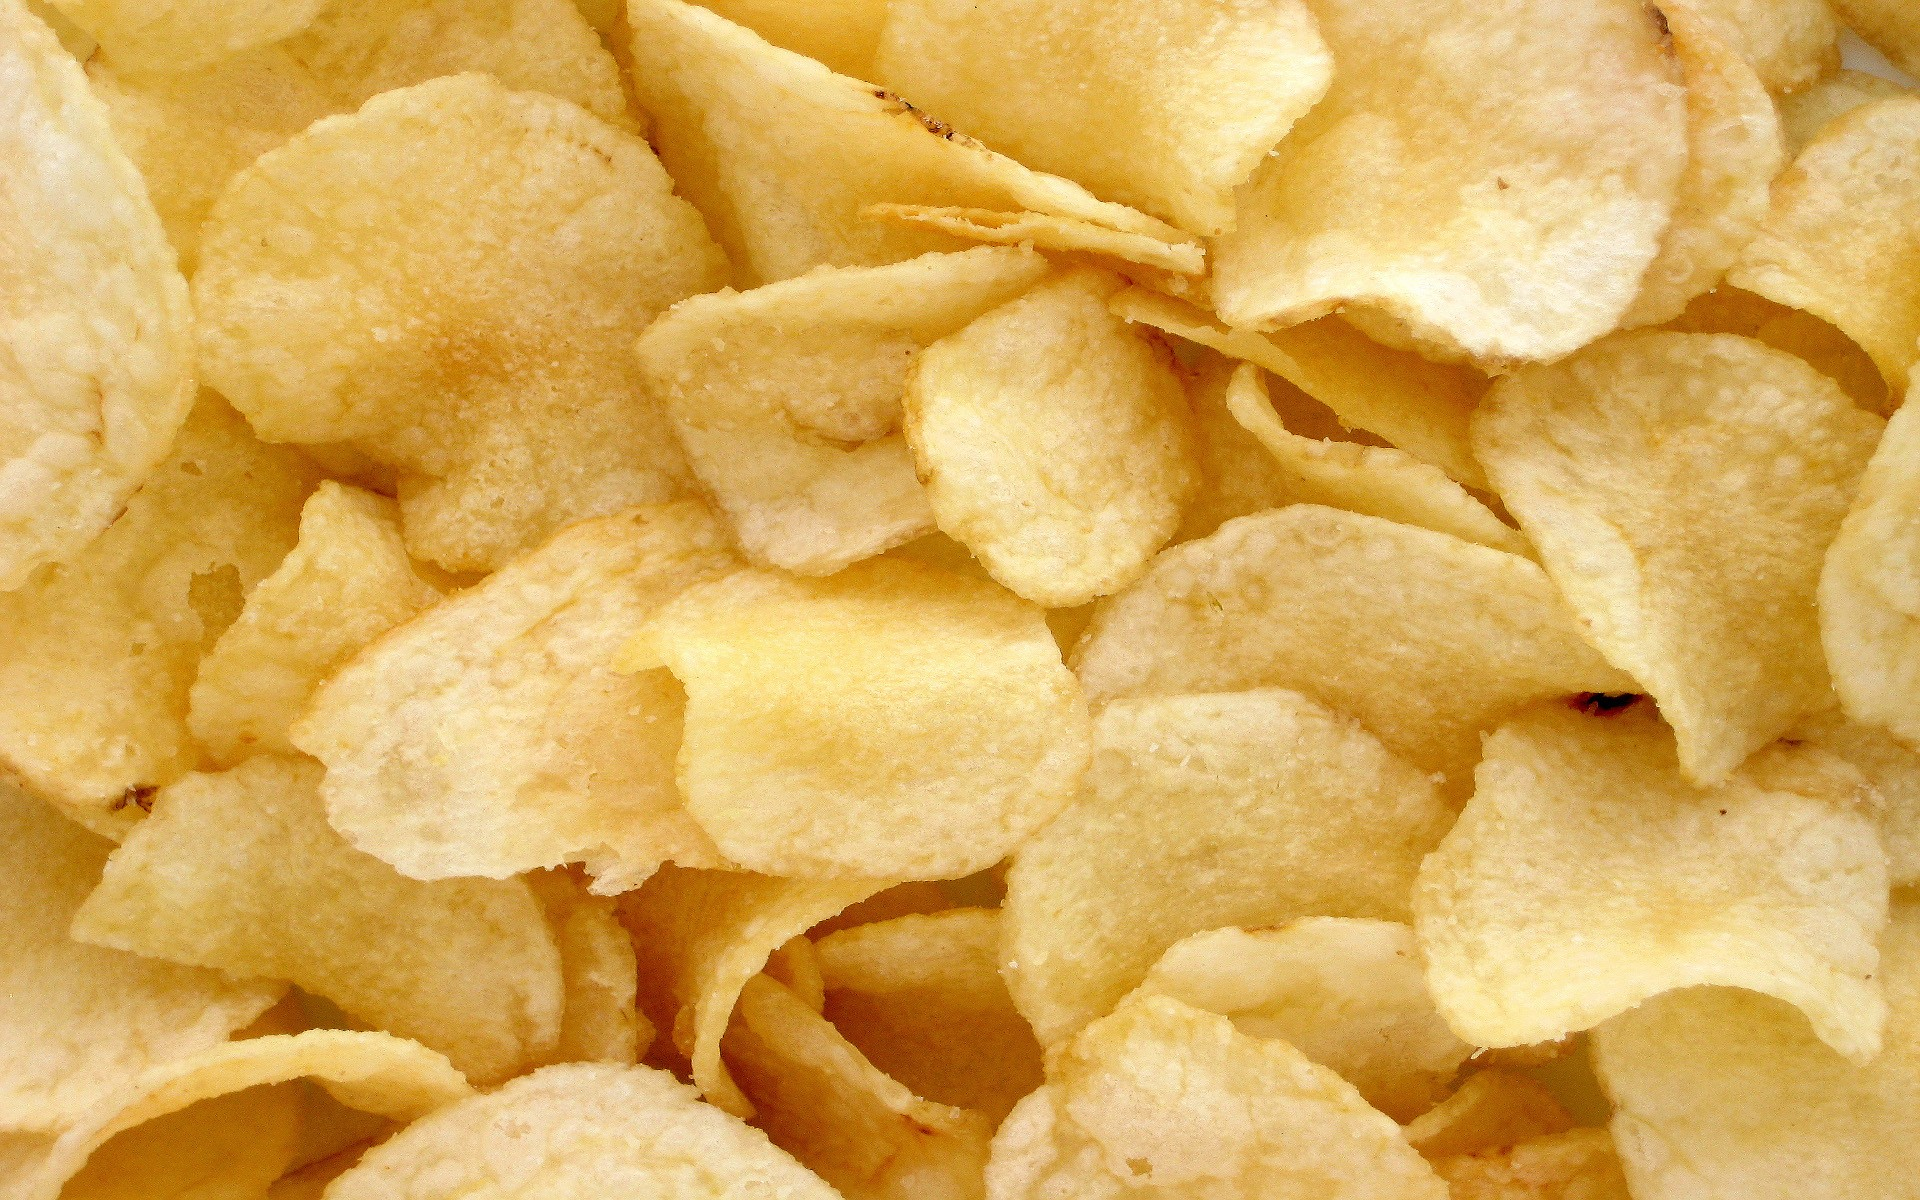 Food Snacks potato chips wallpaper 1920x1200 58944 WallpaperUP 1920x1200